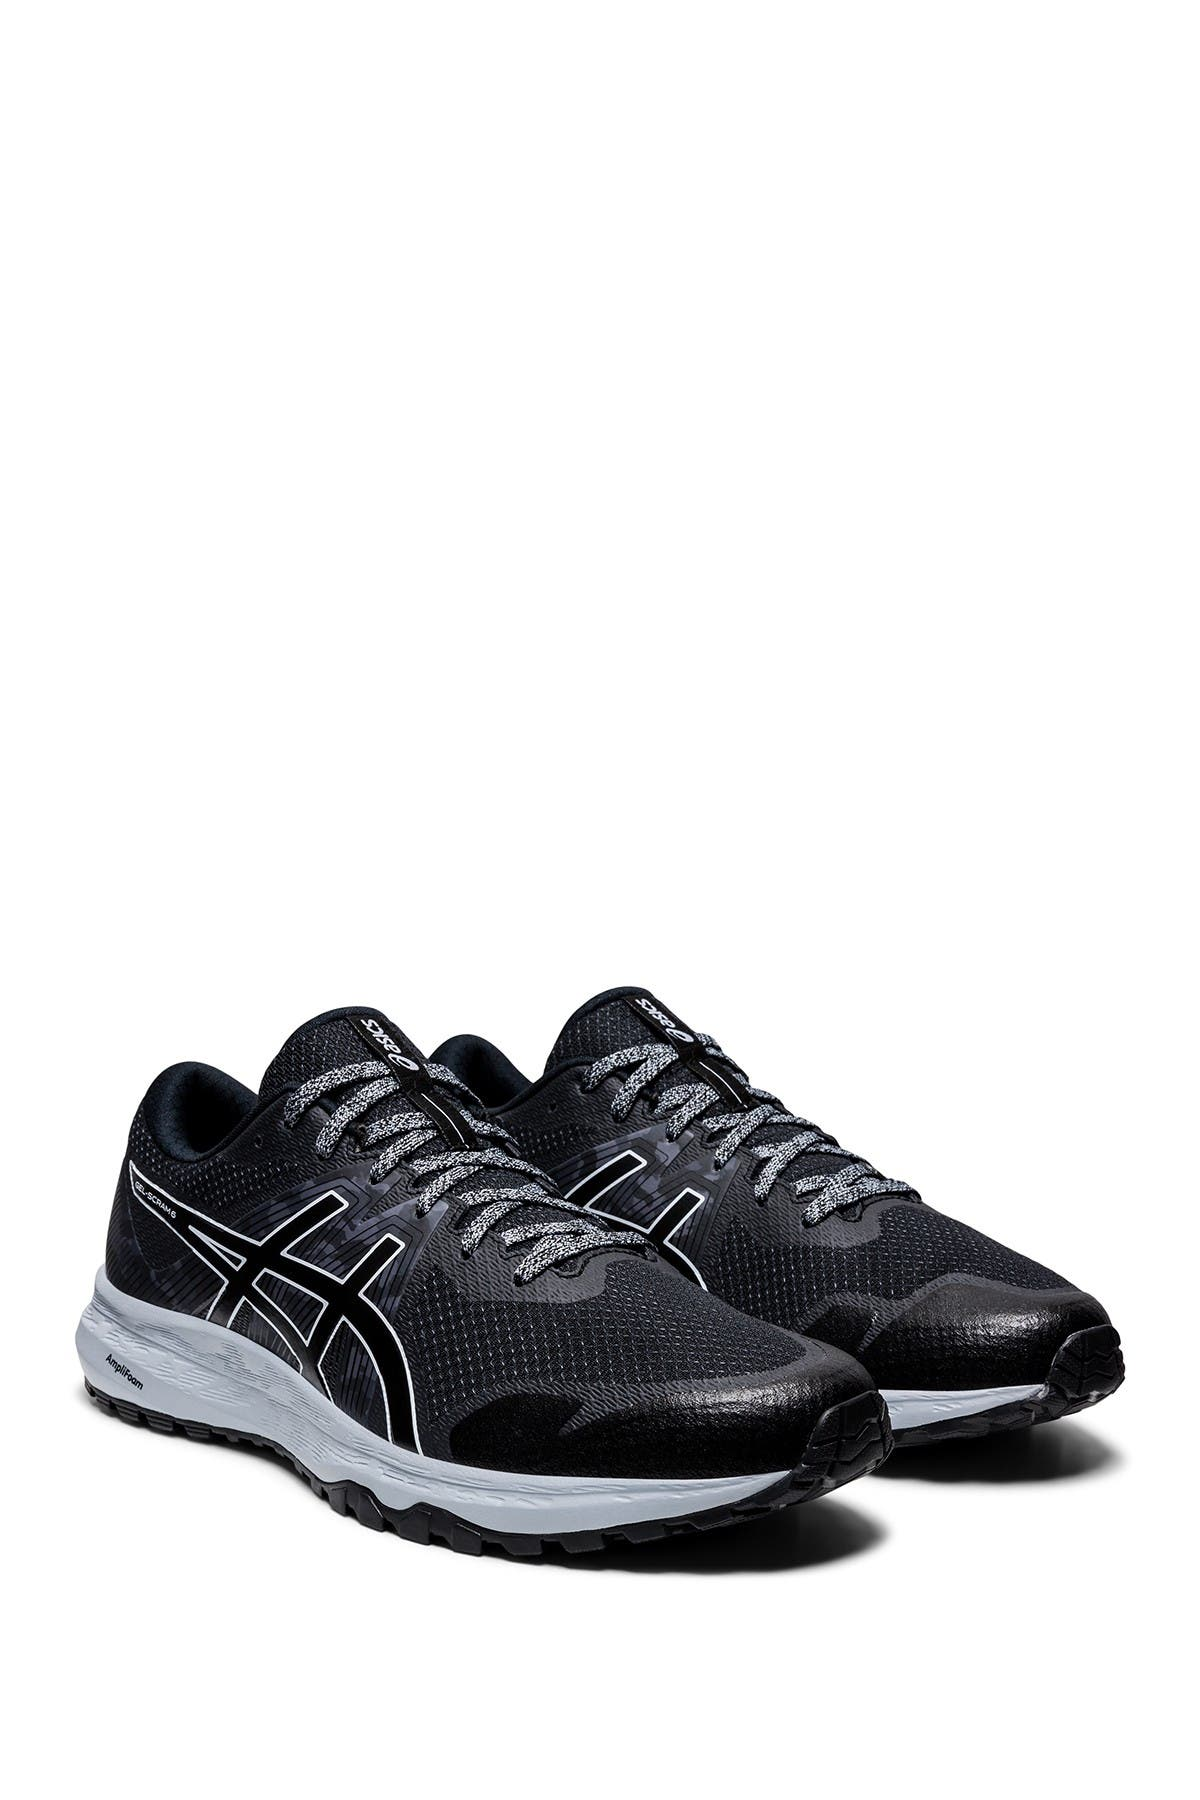 Image of ASICS GEL-Scram 6 Running Sneaker